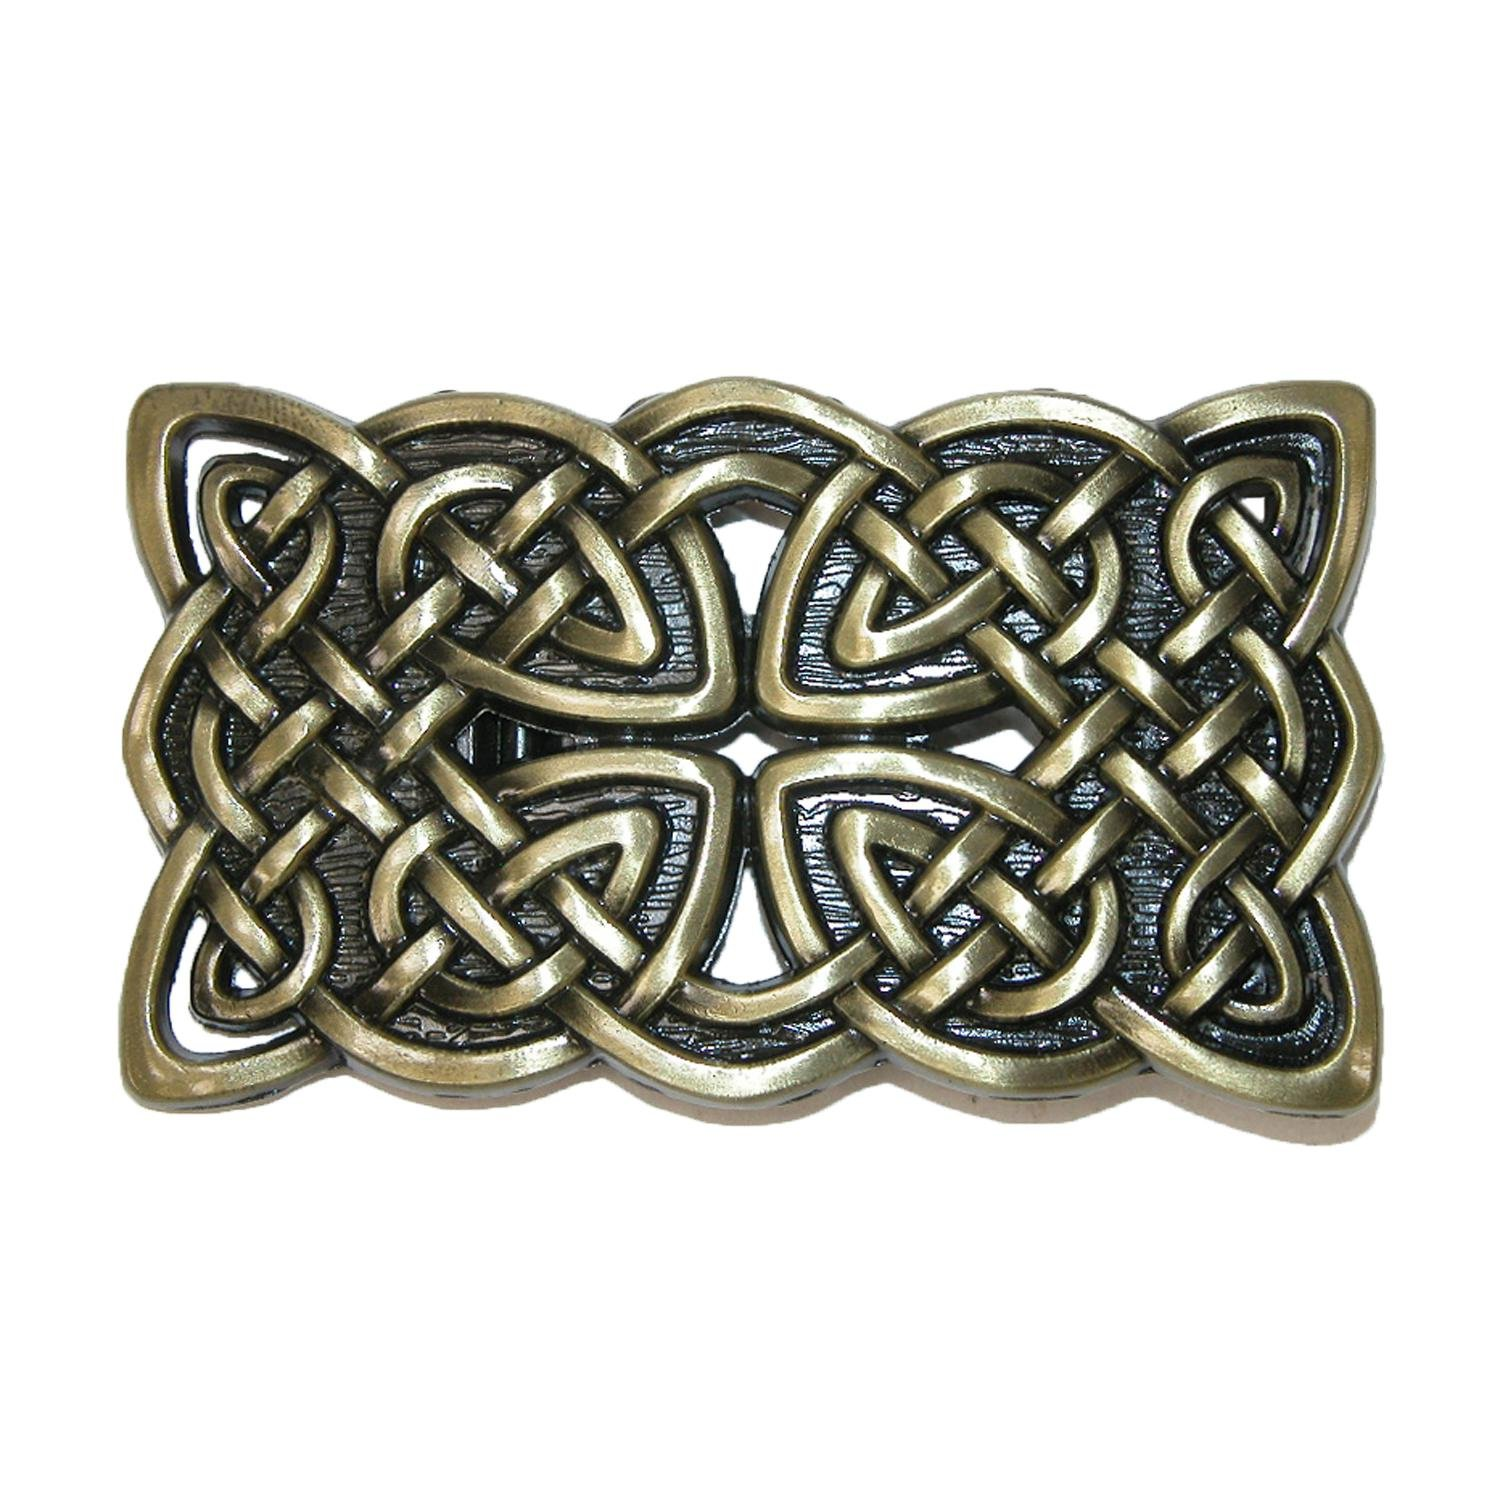 CTM Celtic Knot Belt Buckle, Antique Silver RR-1660-SIL